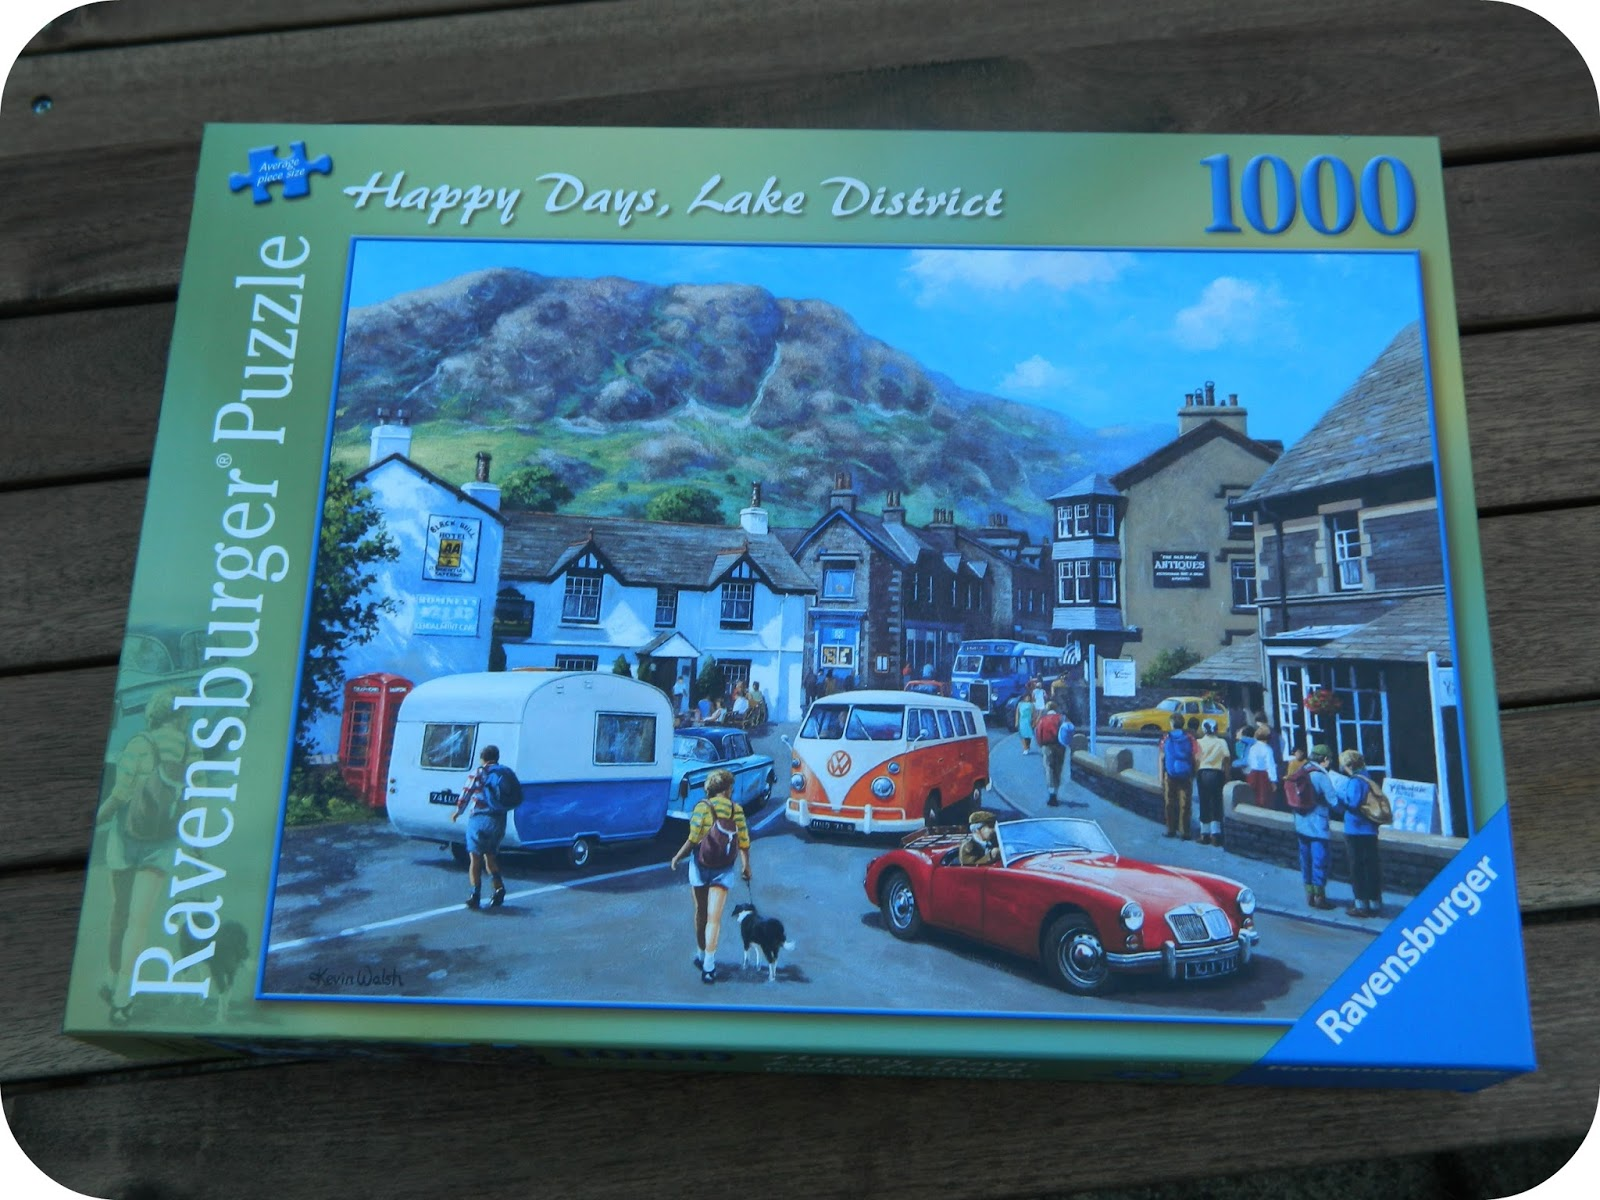 Ravensburger Happy Days Lake District 1000 Piece Jigsaw Puzzle